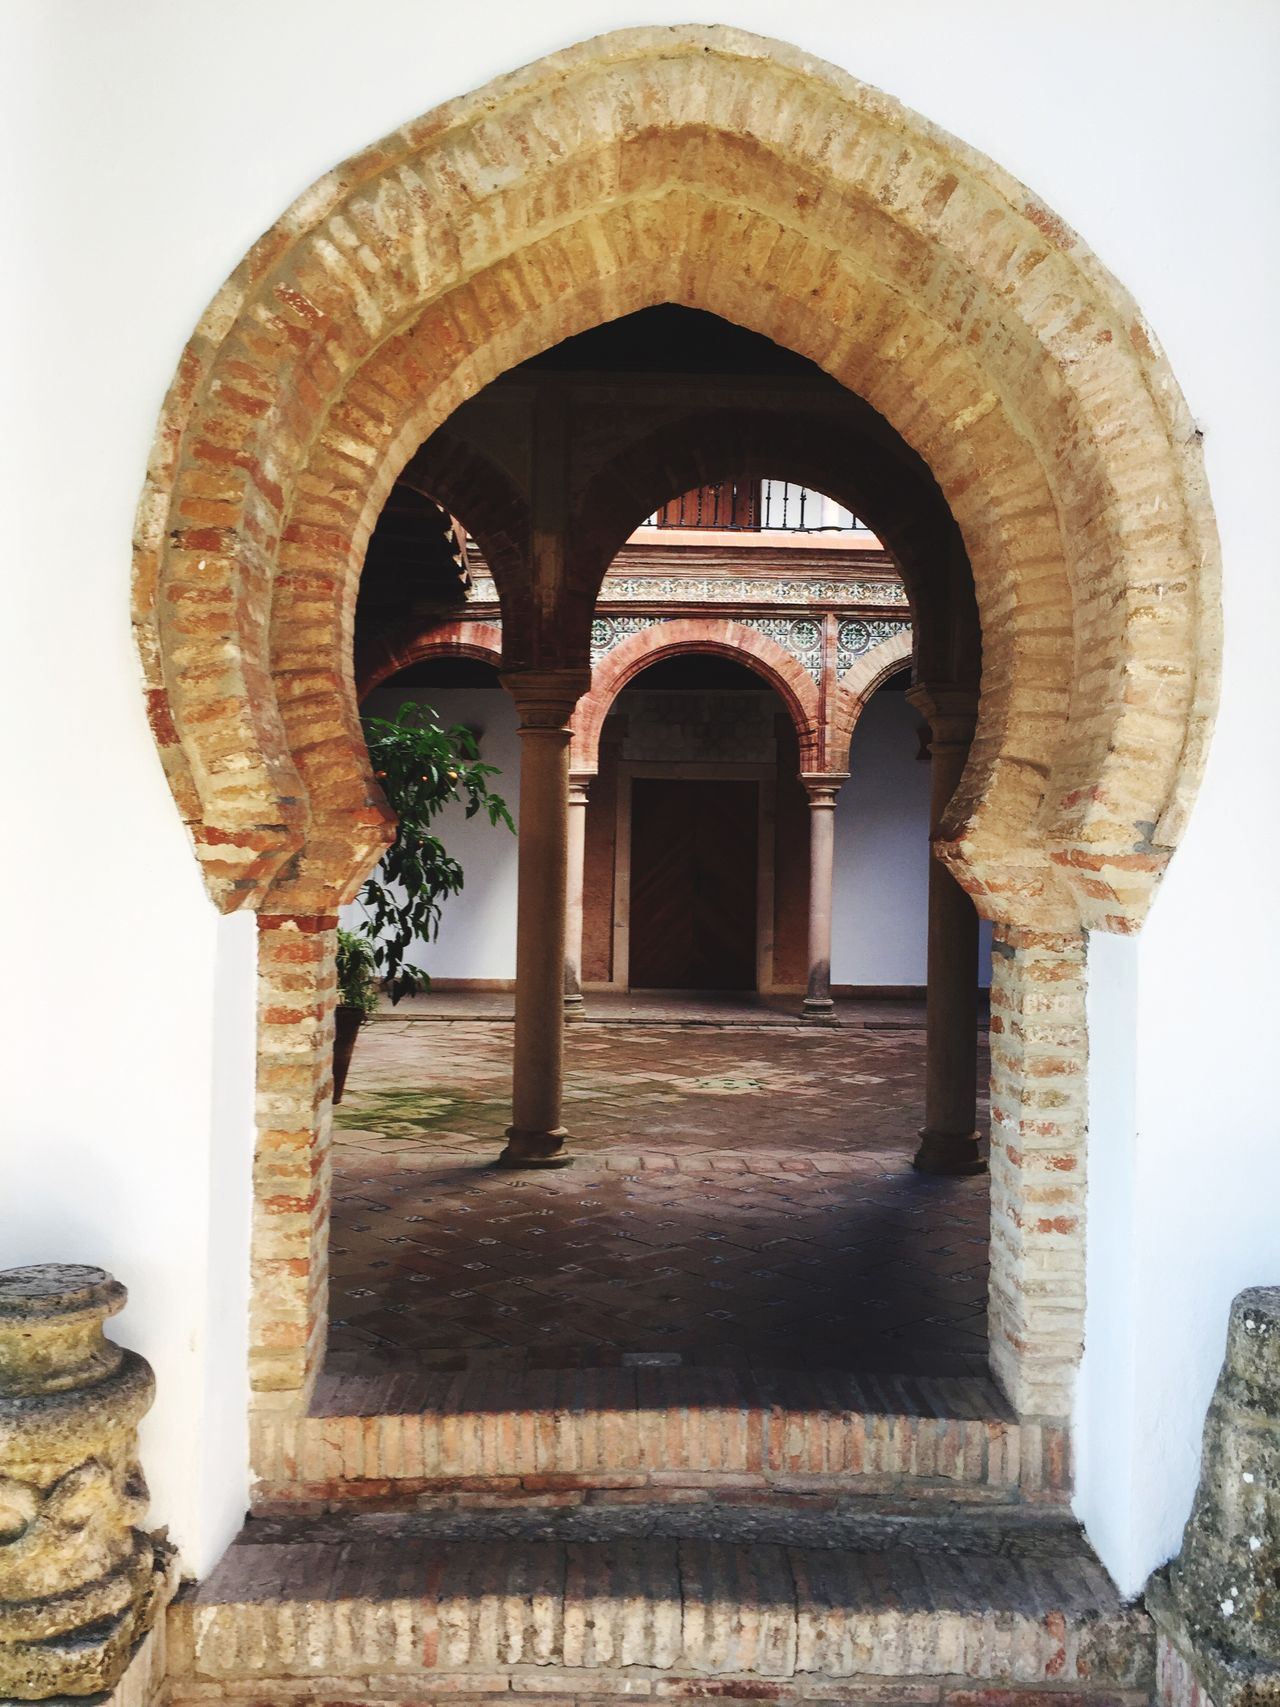 Arch Architecture Built Structure No People Day Archway Indoors  Ronda Arabic Al Andalus